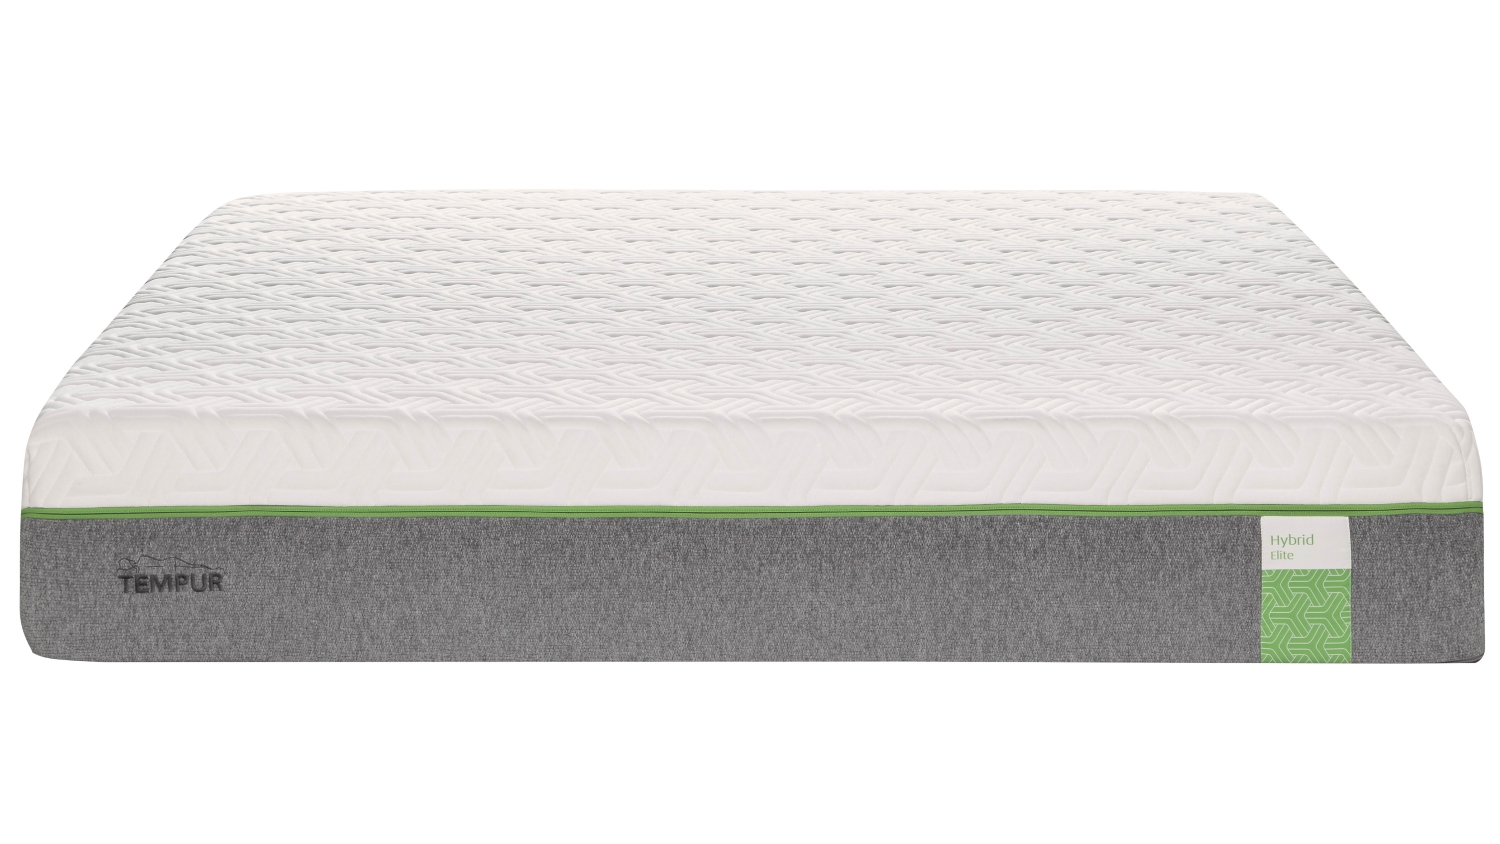 Single Mattresses Melbourne Buy Tempur Geneva Hybrid Mattress Domayne Au